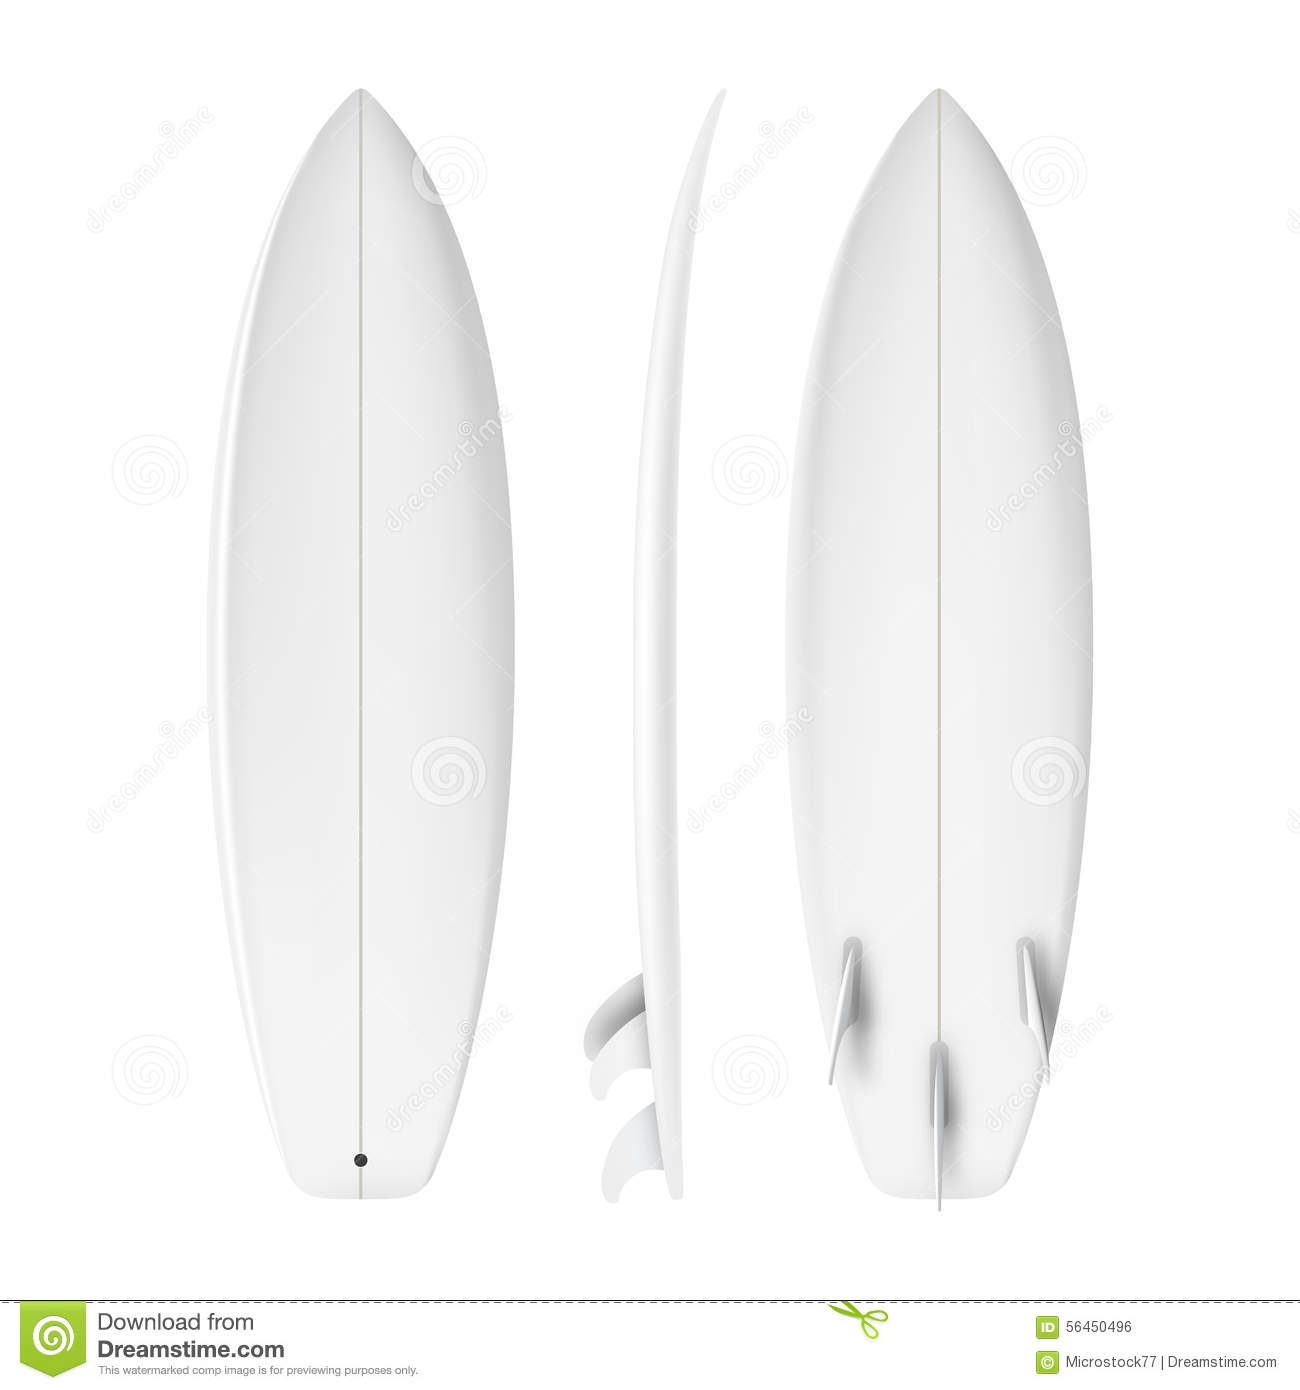 Surfboard front back side view isolated on white background in format.